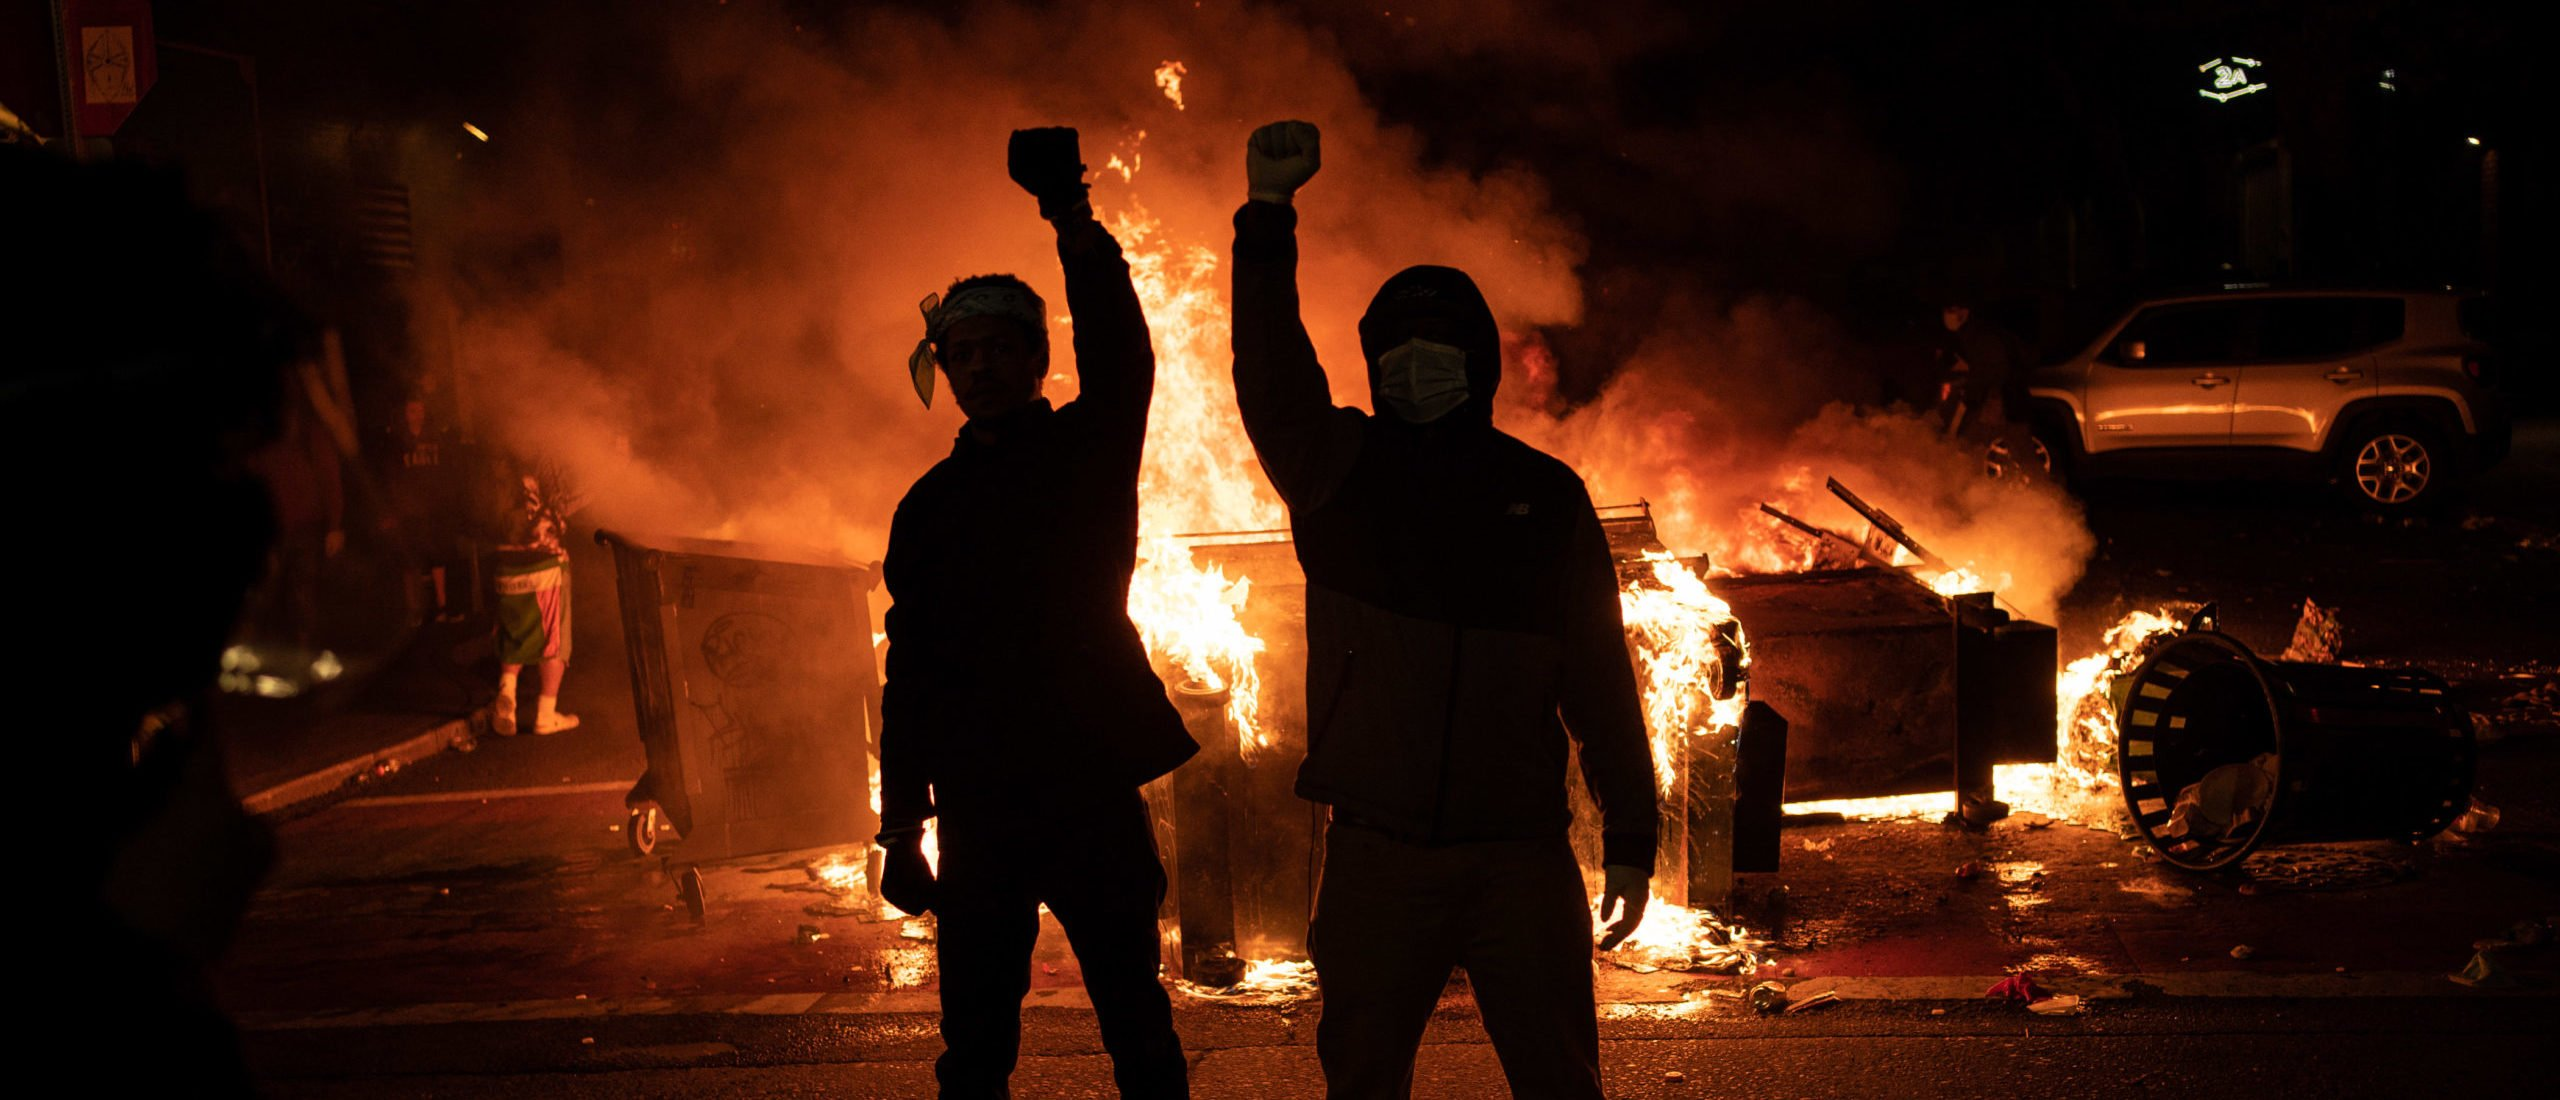 Here Are 5 Times People Rioted Over Police-Related Incidents Before All The Facts Were Out